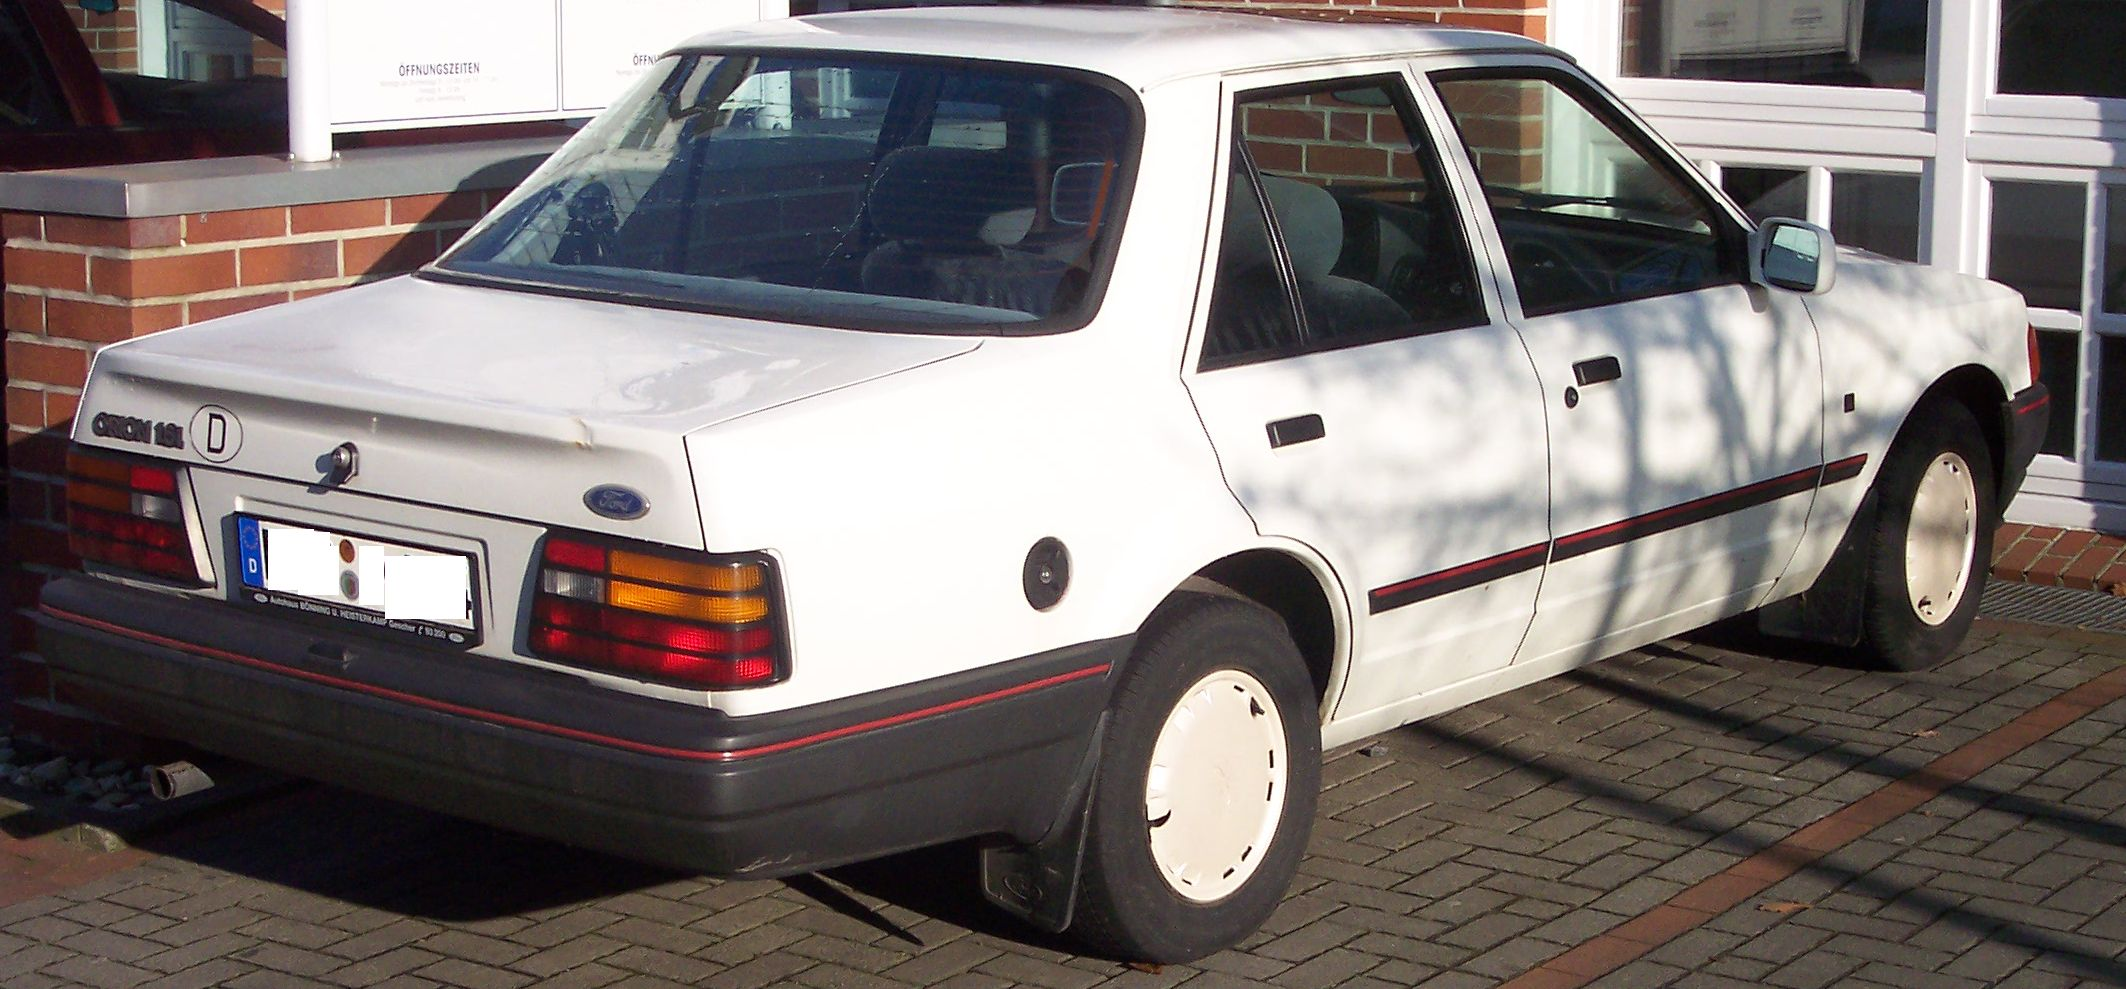 FORD ORION white